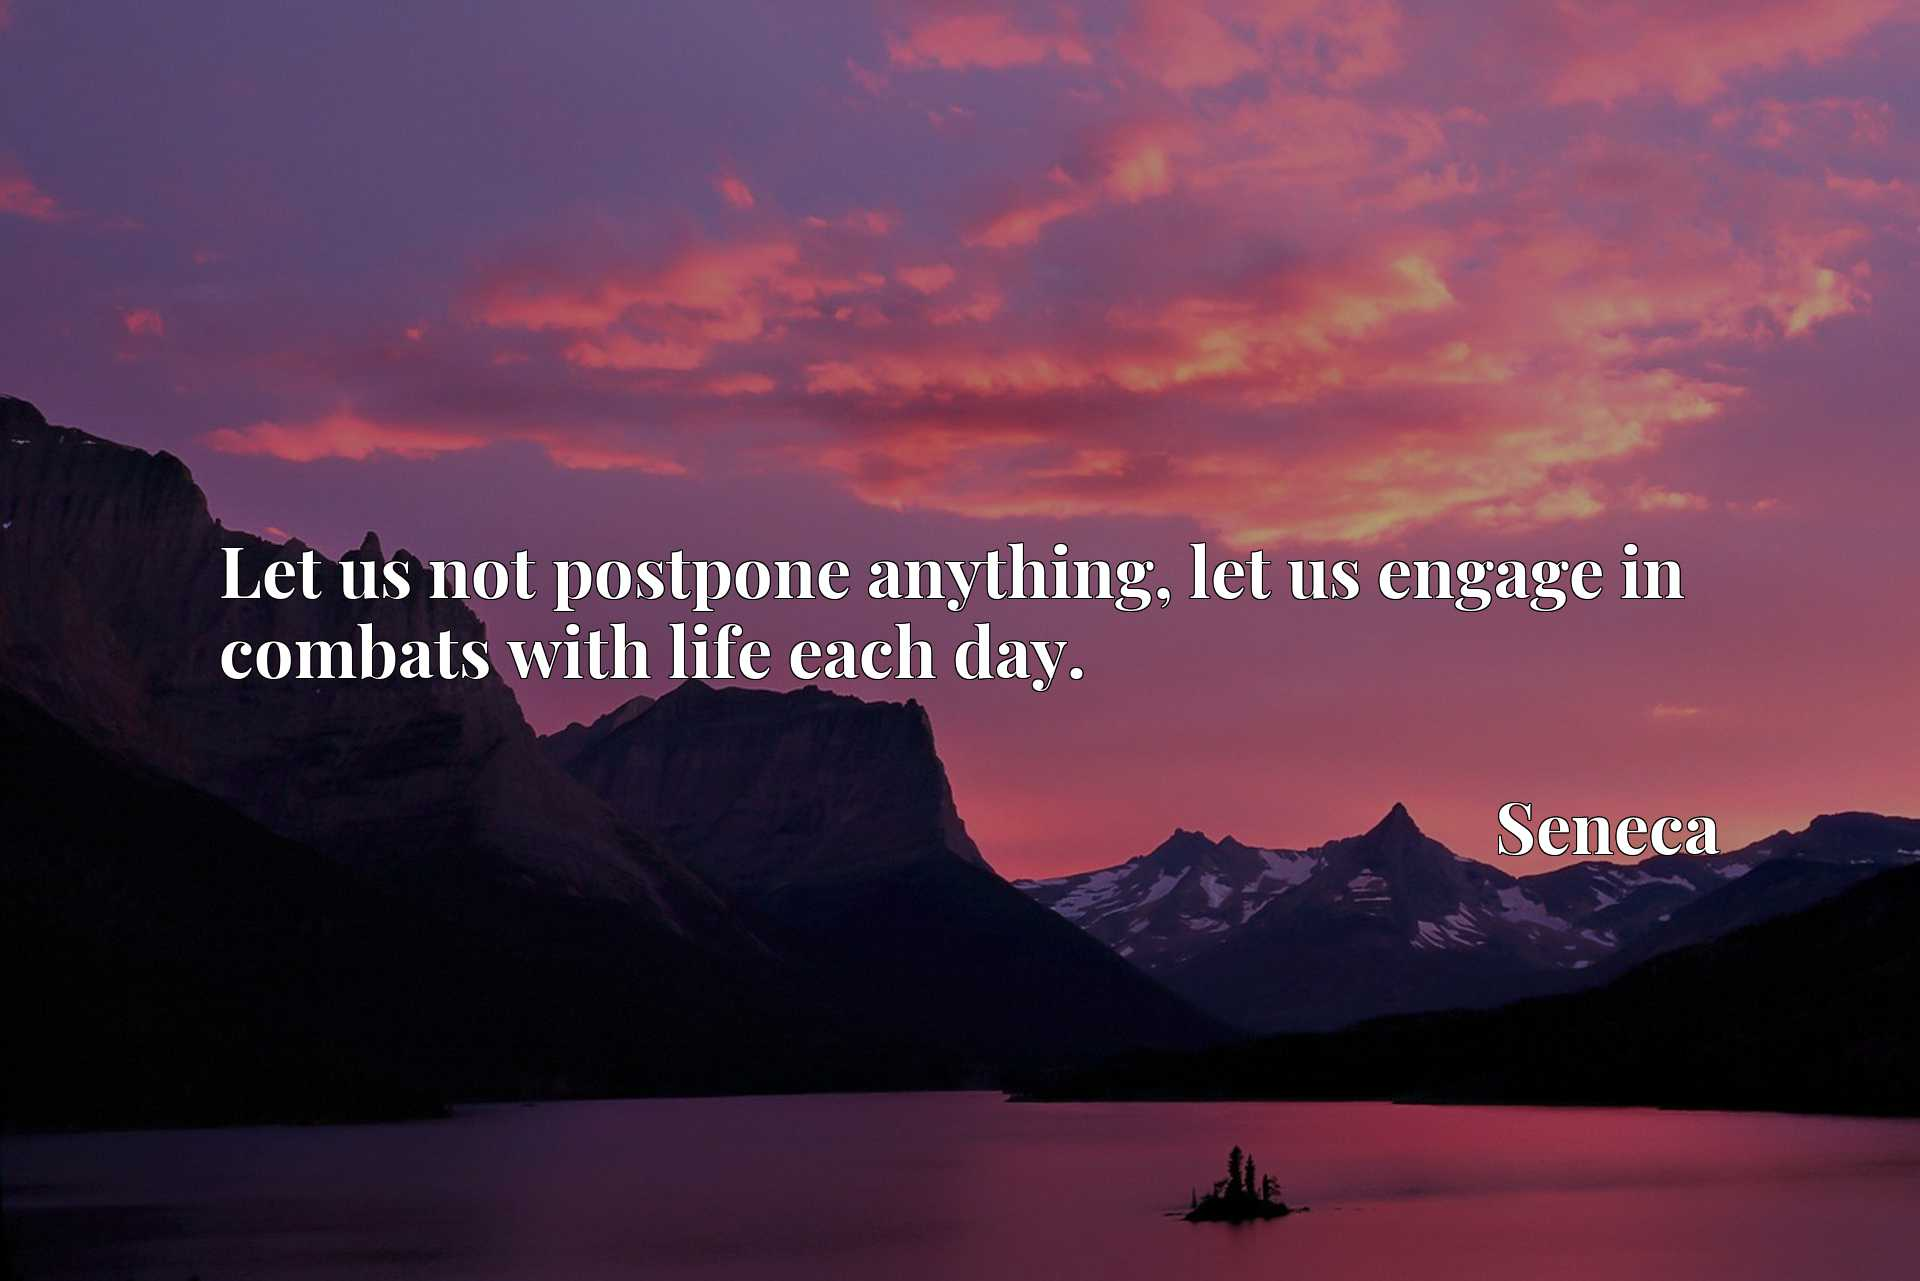 Let us not postpone anything, let us engage in combats with life each day.